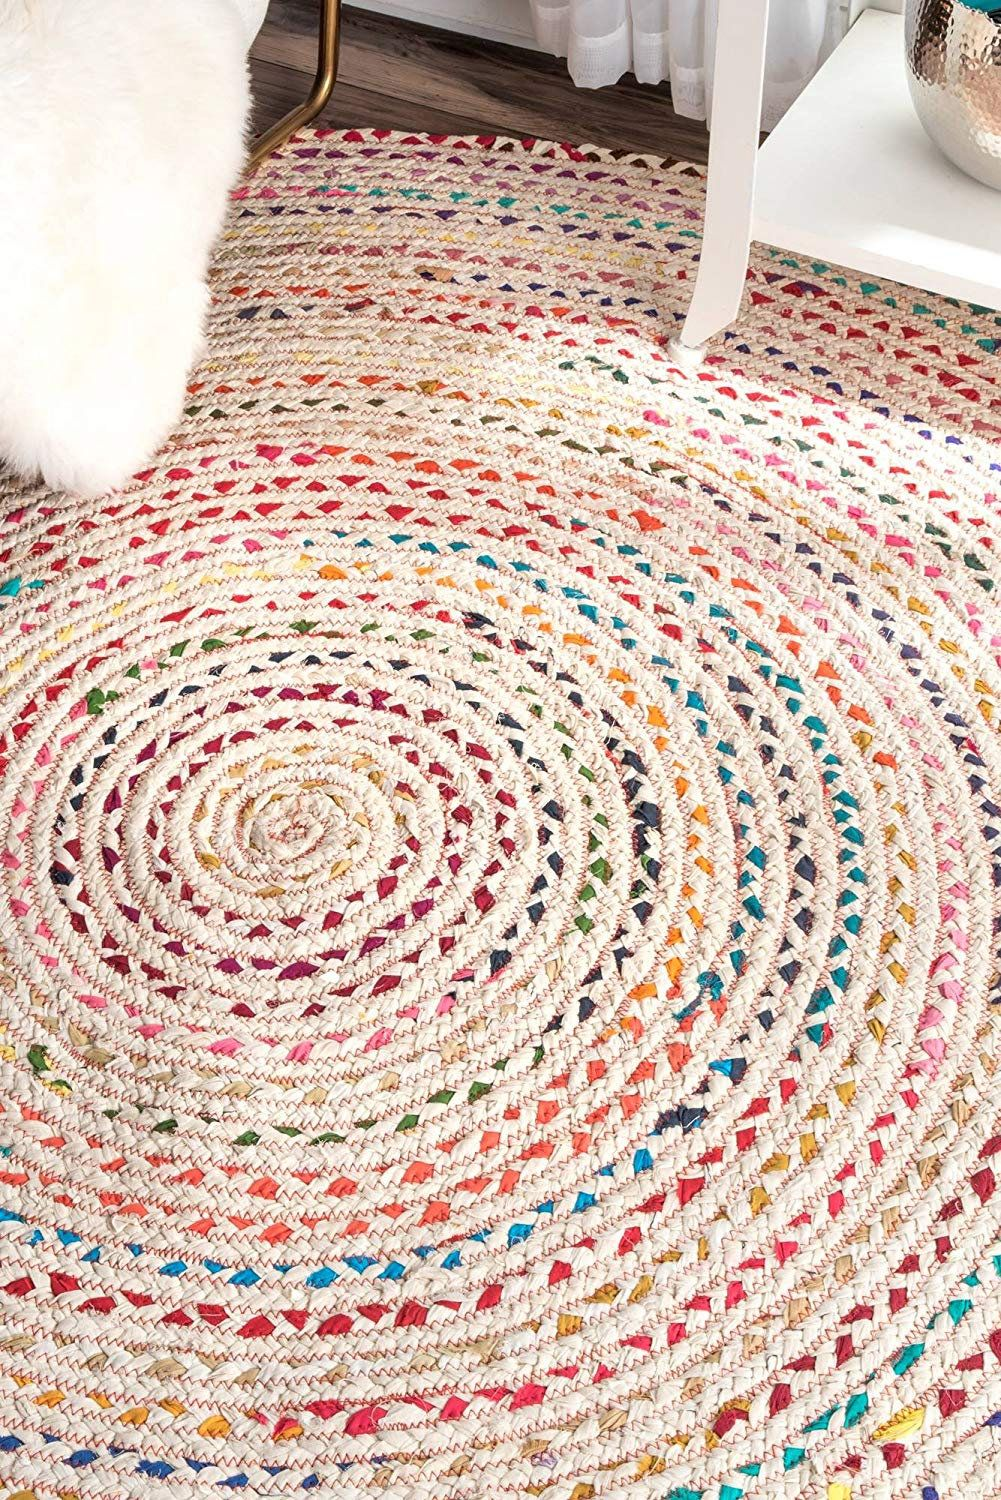 Hand Braided Bohemian Colorful Cotton Jut Area Rug Round Rug Blue Colors Home Decor Rugs Round Shape 5 Feet Diameter Ci Colorful Area Rug Circle Rug Floor Rugs